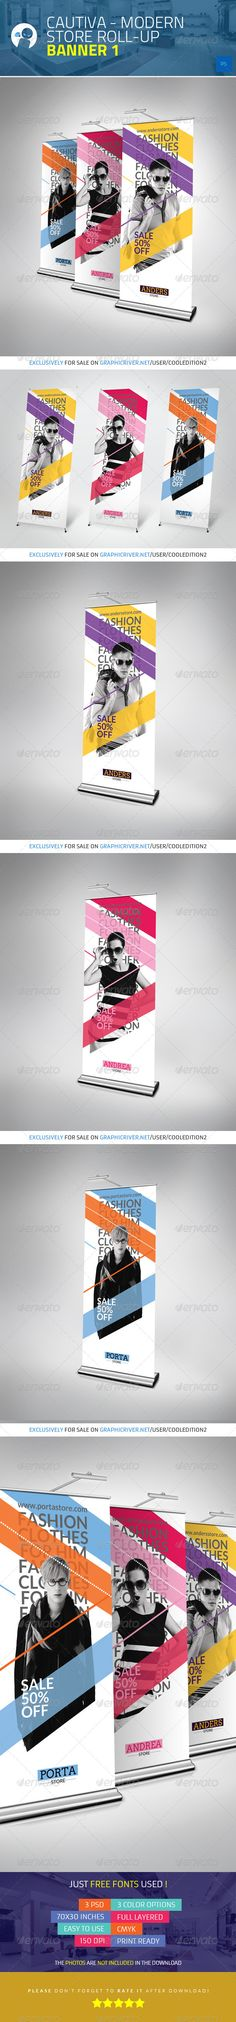 Cautiva - Modern Store - Roll Up Banner 1 - $6